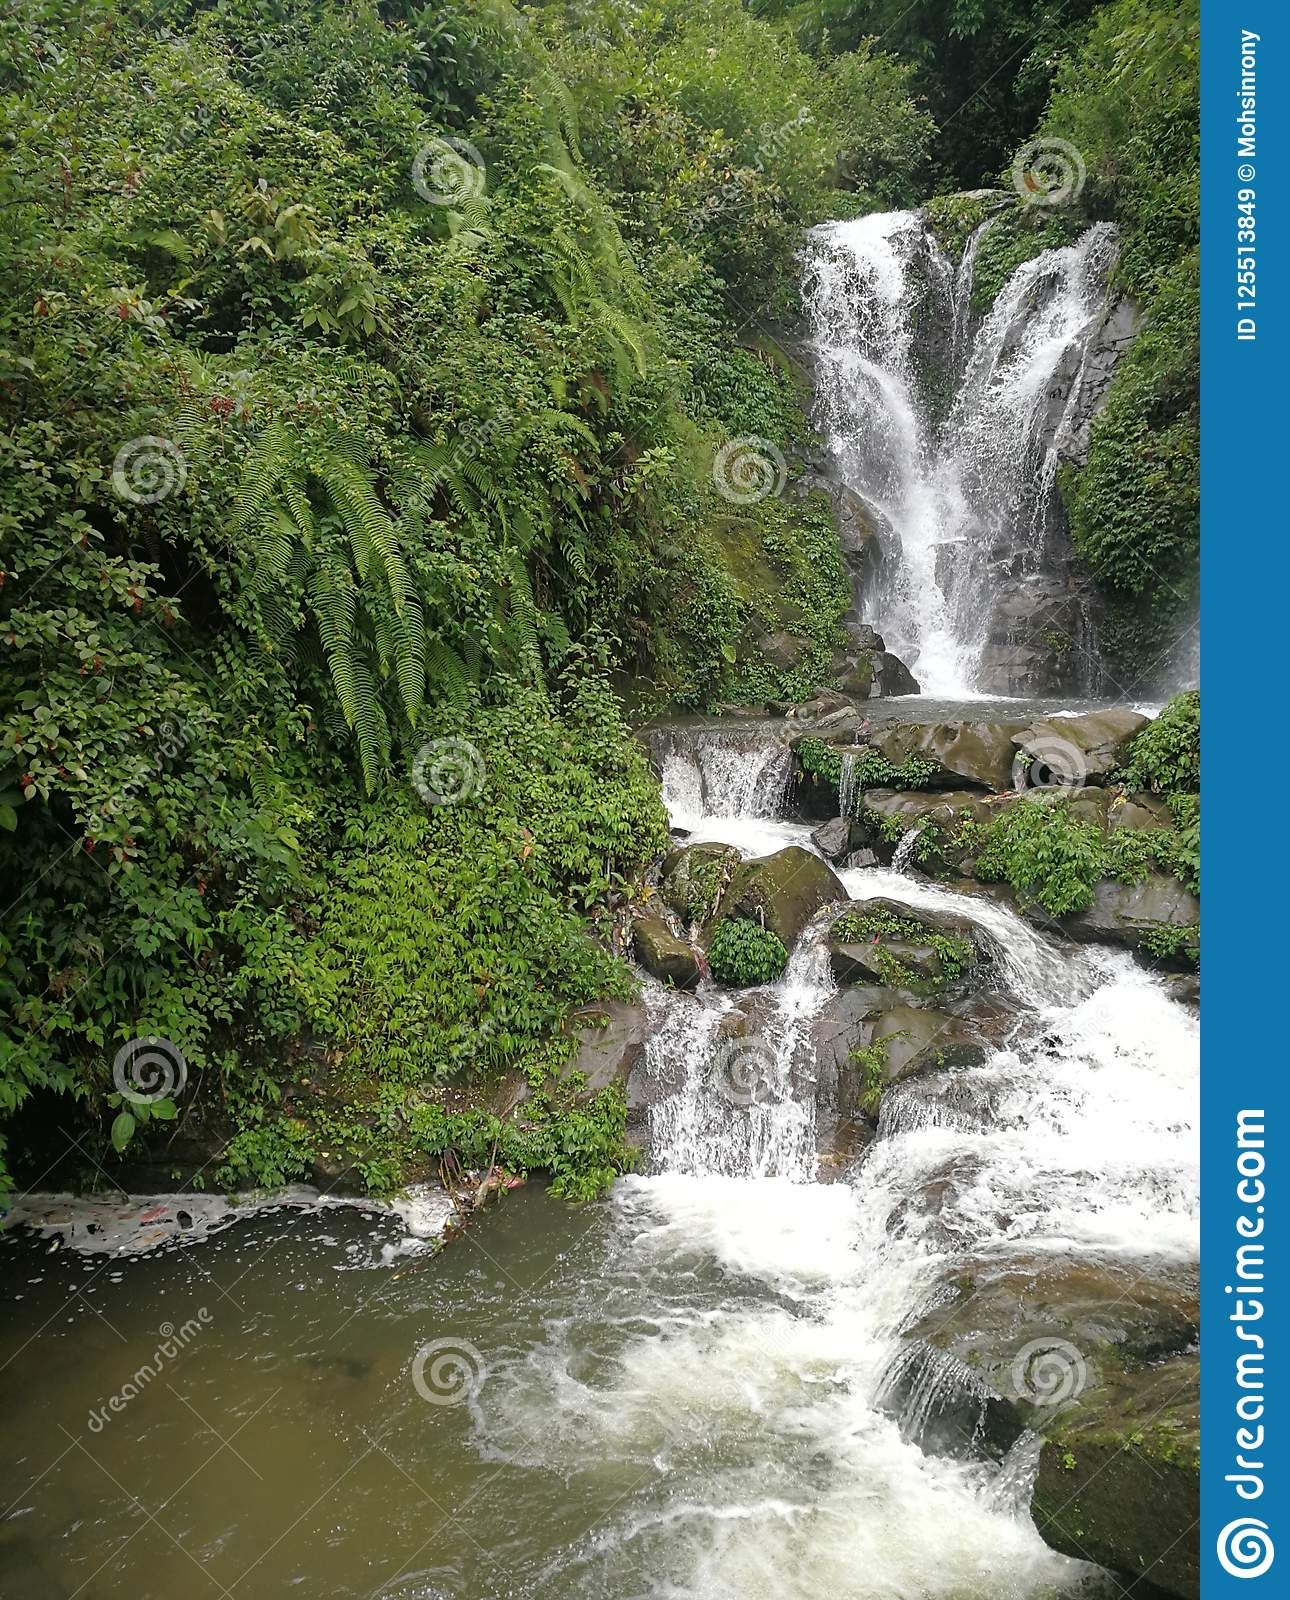 Photo About Forest River Mountain Landscape Image Of Landscape Fountain River 125513849 Landscaping Images Landscape Mountain Landscape